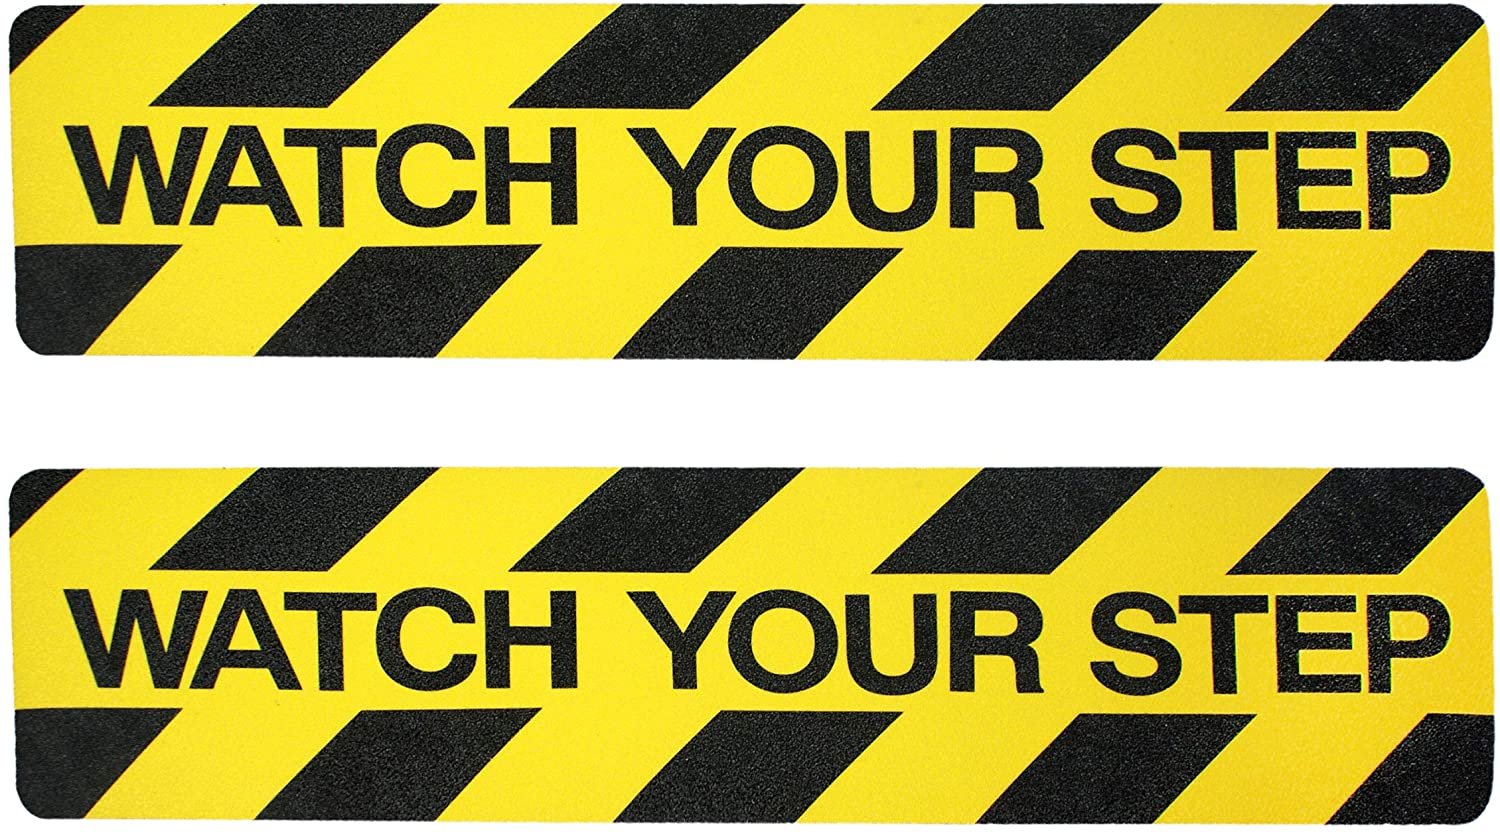 Watch Your Step Sign. 2 Pack Non-Slip Stair Warning Caution Tape Treads.| 6 X 24 Self-Adhesive Black/Yellow Safety Floor Decal ● Anti Slip Tape Stickers for Workplace/Home. Safety Tape Stair Sign